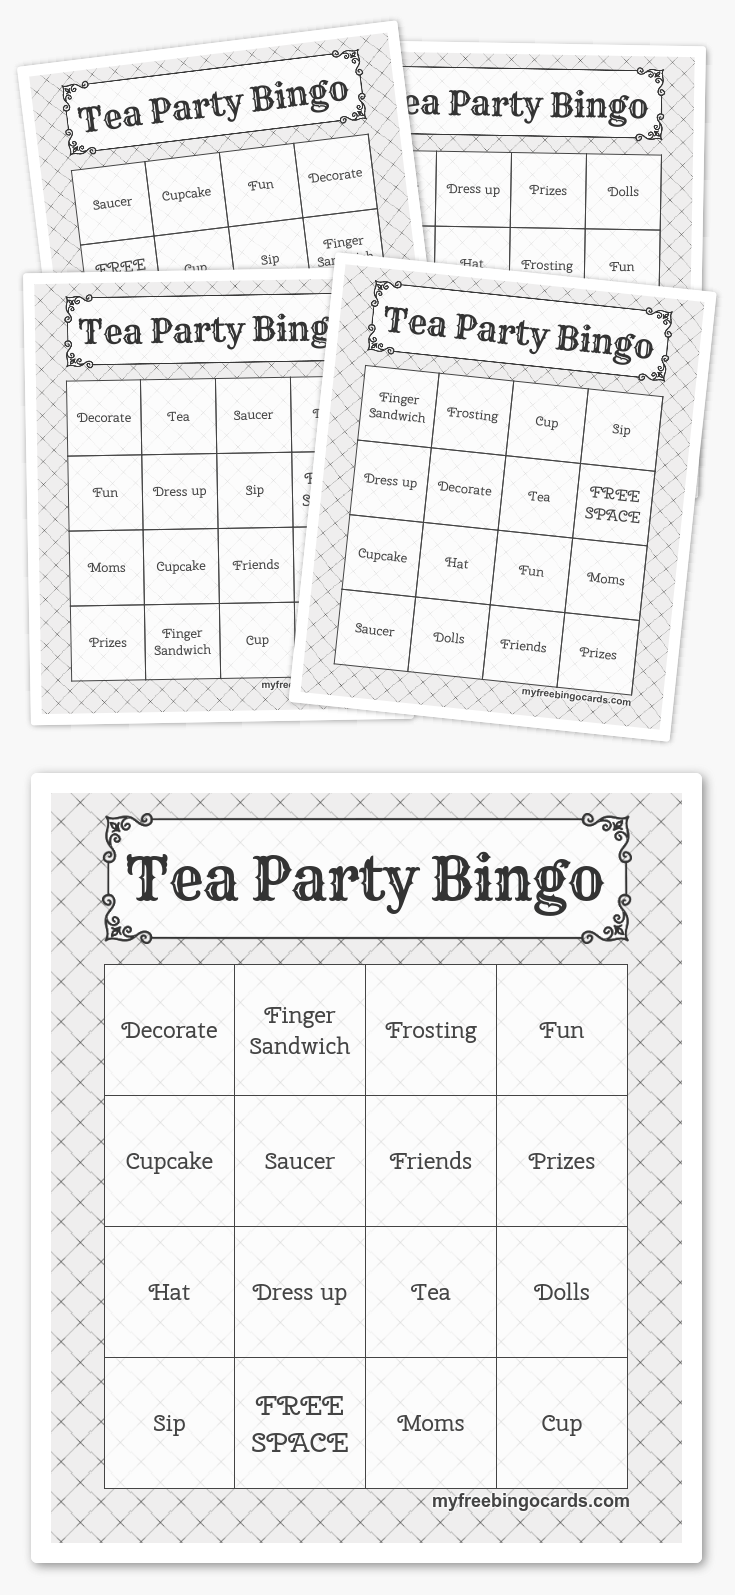 Make Your Own Free Bingo Cards At Myfreebingocards Com Harry Potter Activities Harry Potter Birthday Party Harry Potter Birthday